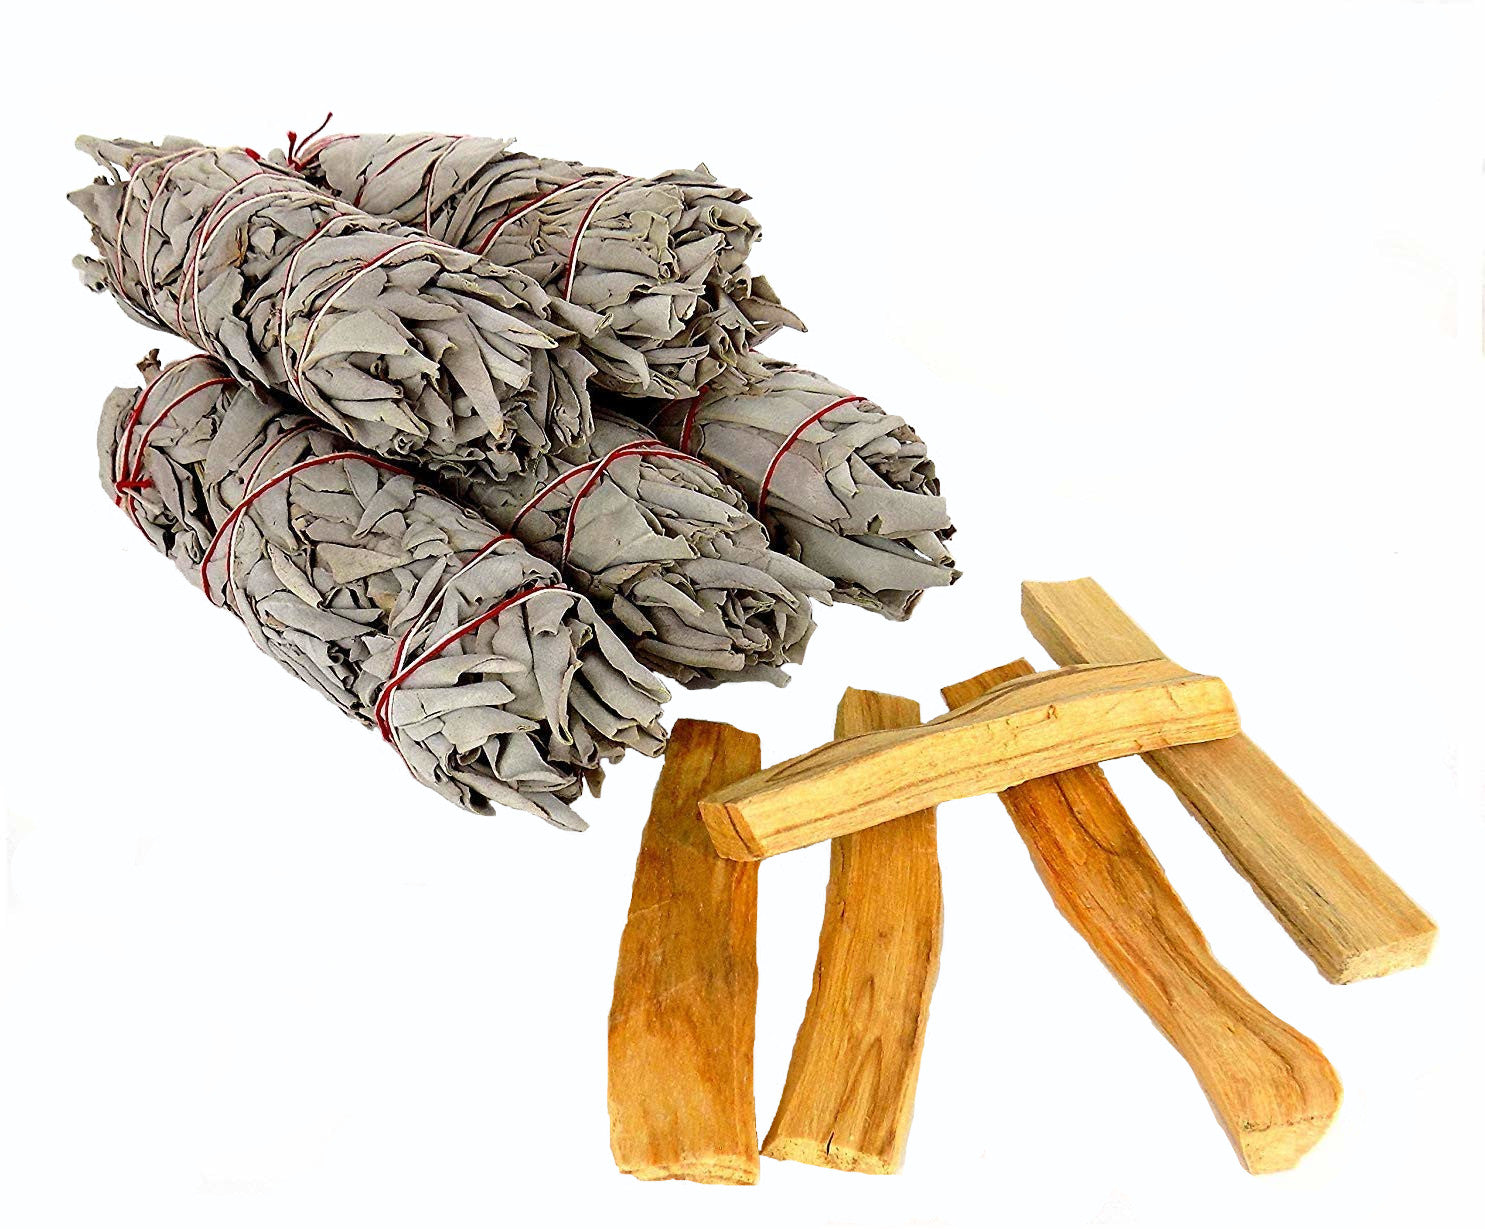 White California Sage Smudge Sticks & Palo Santo Wood Kit - 5 of each - Perfect for replenishing a smudge kit or sharing with loved ones - premium grade